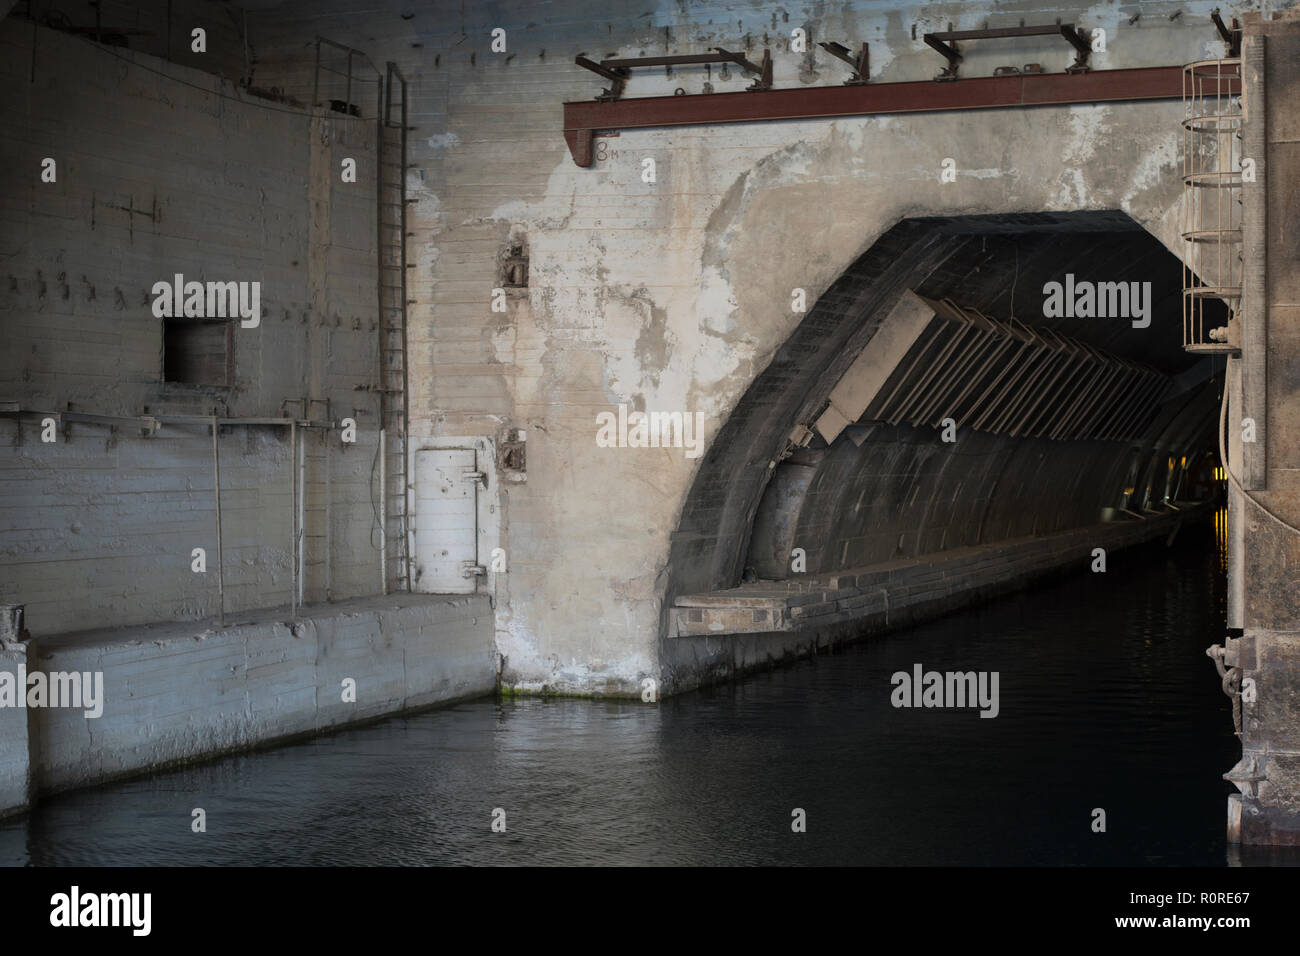 the entrance to the concrete bunker with the entrance from the water side. entry for ships Stock Photo